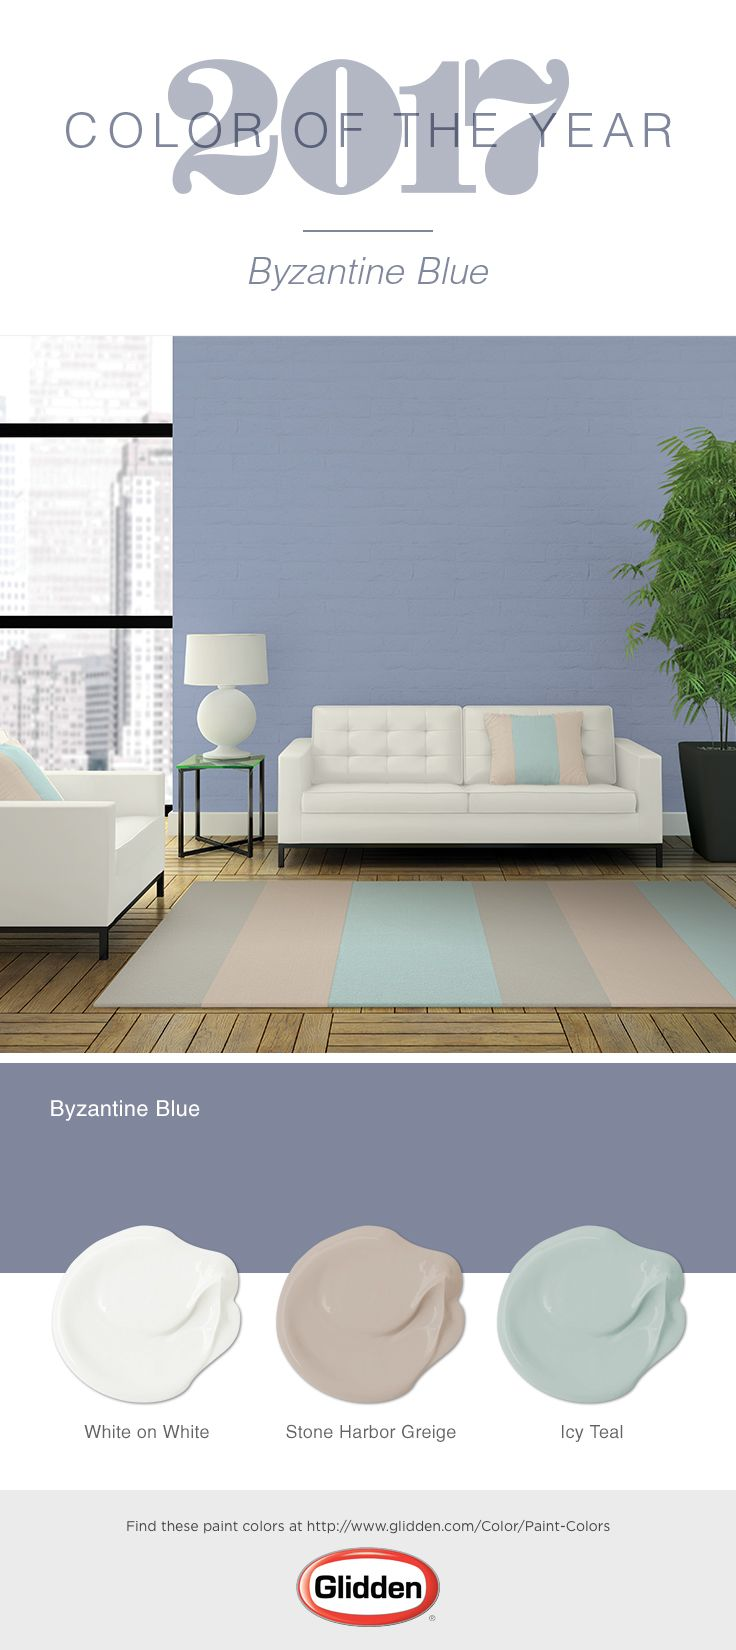 Byzantine Blue The Glidden 2017 Color Of Year Is Recommended For Any Do It Yourself Homeowner Looking To Create Balance In Life And Elish A